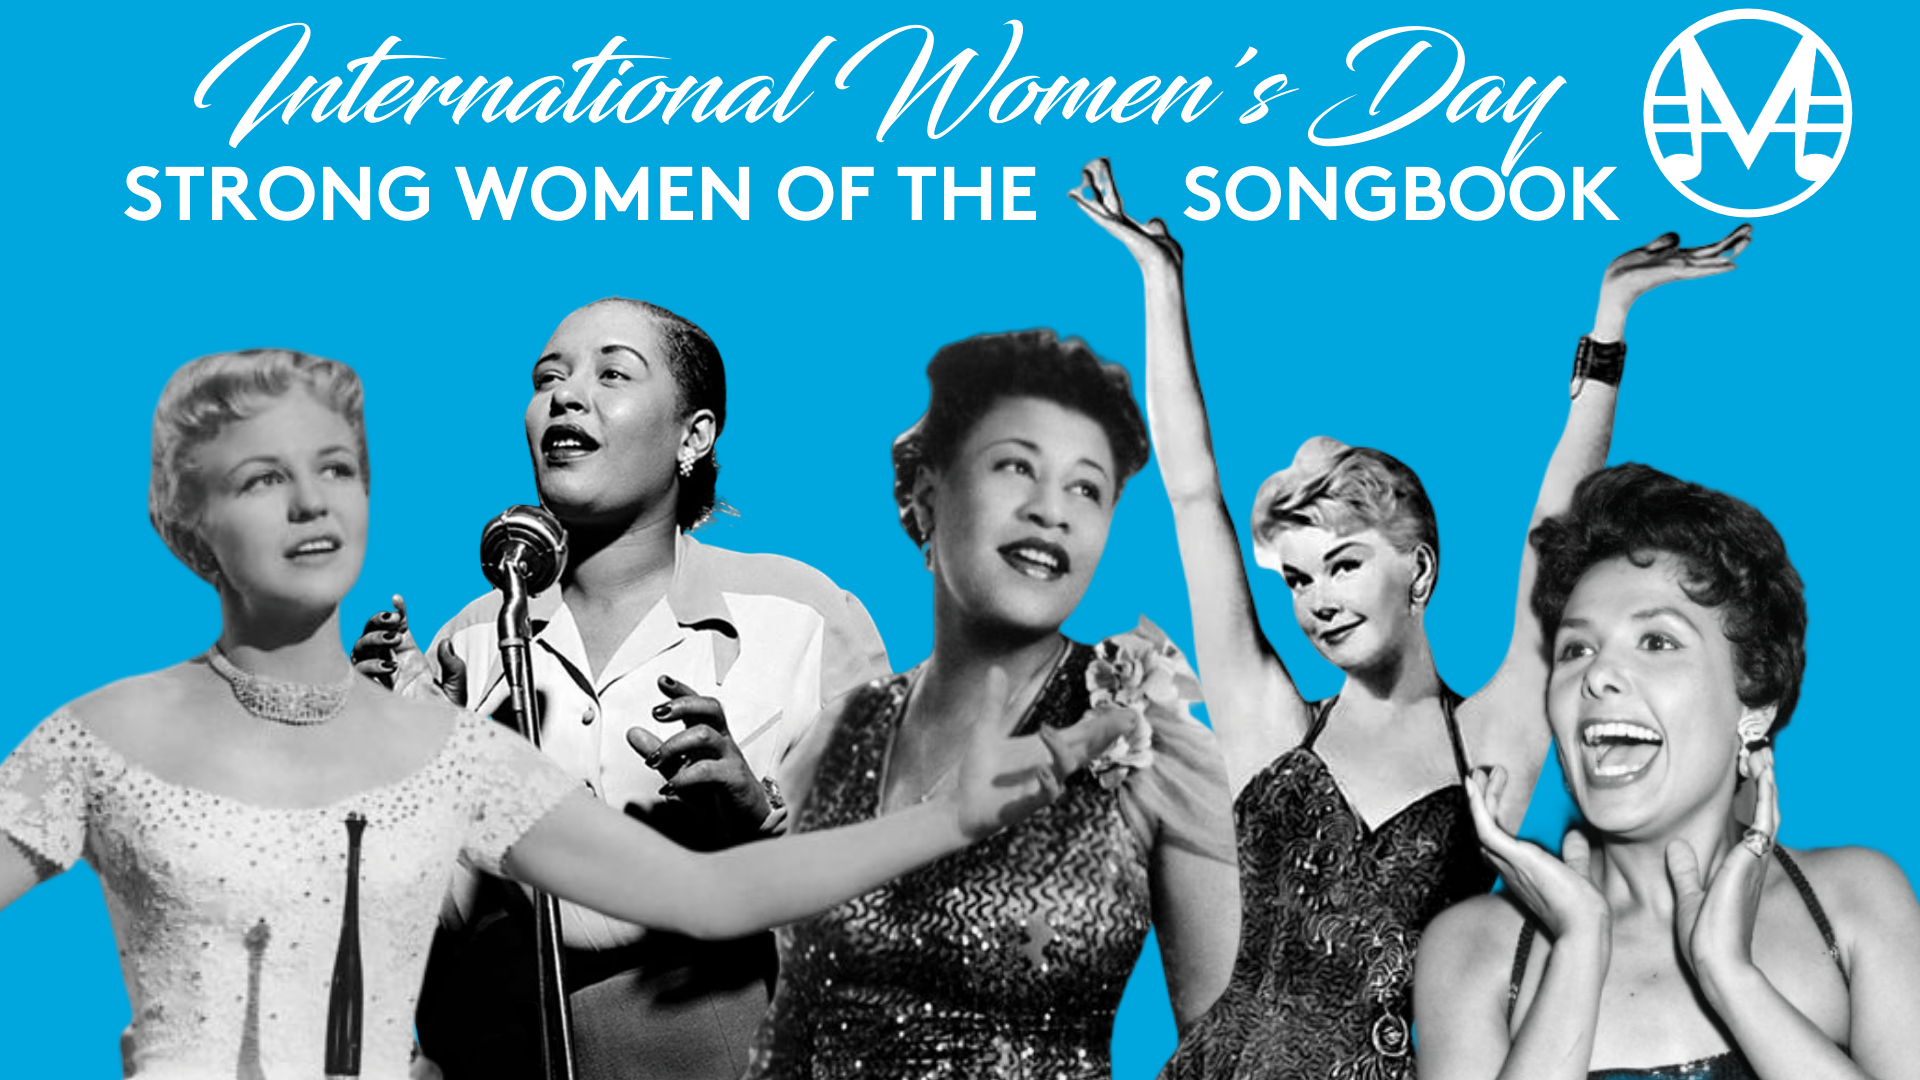 Strong Women of the Songbook - Peggy Lee, Billie Holiday, Ella Fitzgerald, Doris Day, Lena Horne